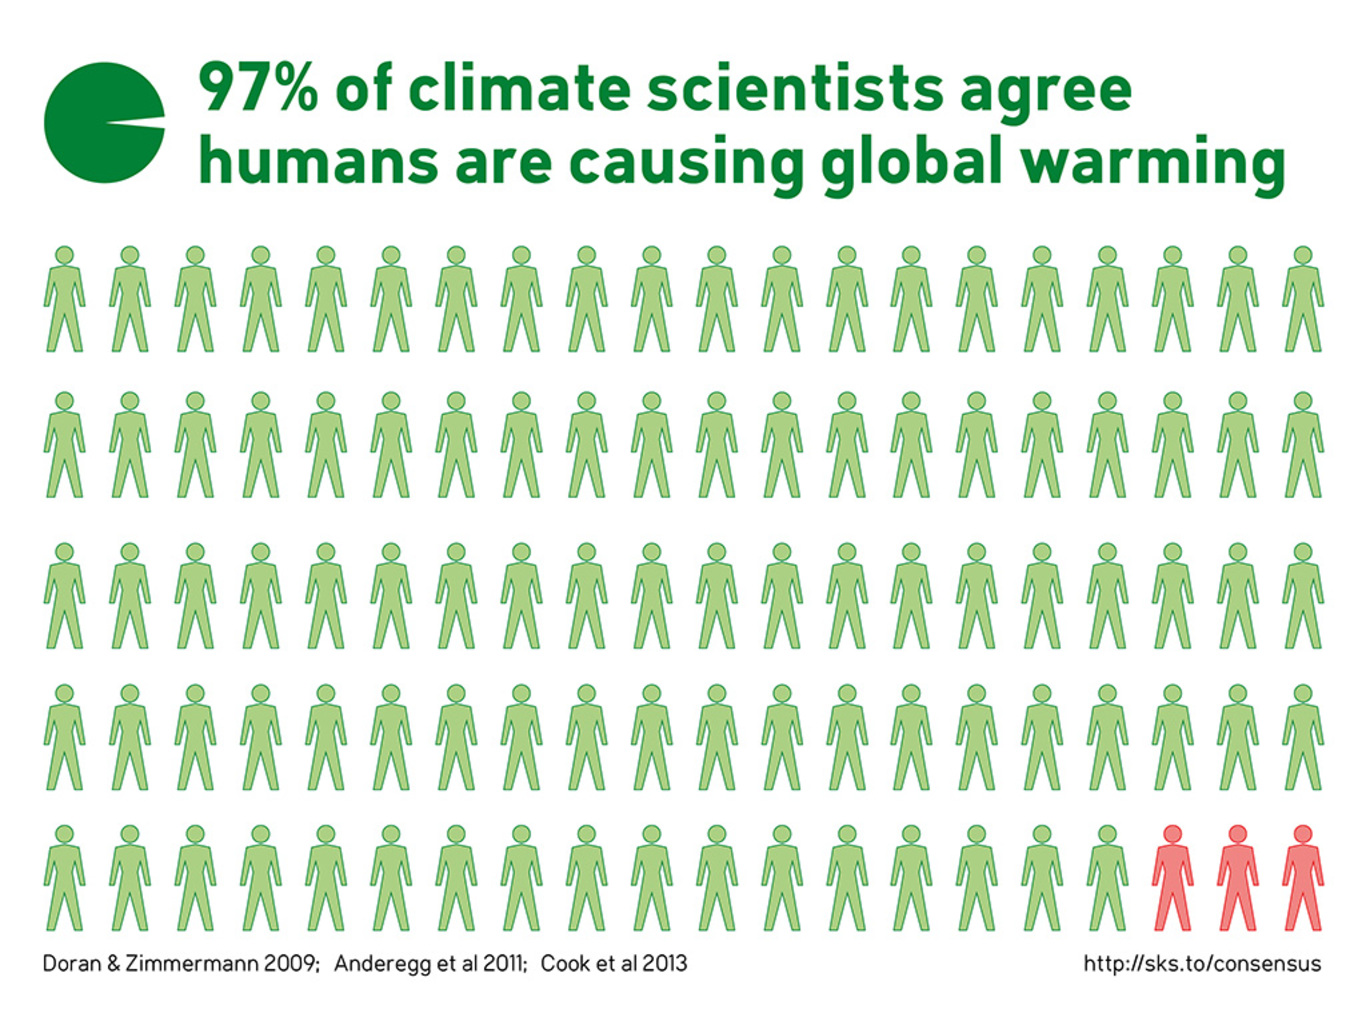 How come you Warmers get onto us Deniers about not using research papers...?